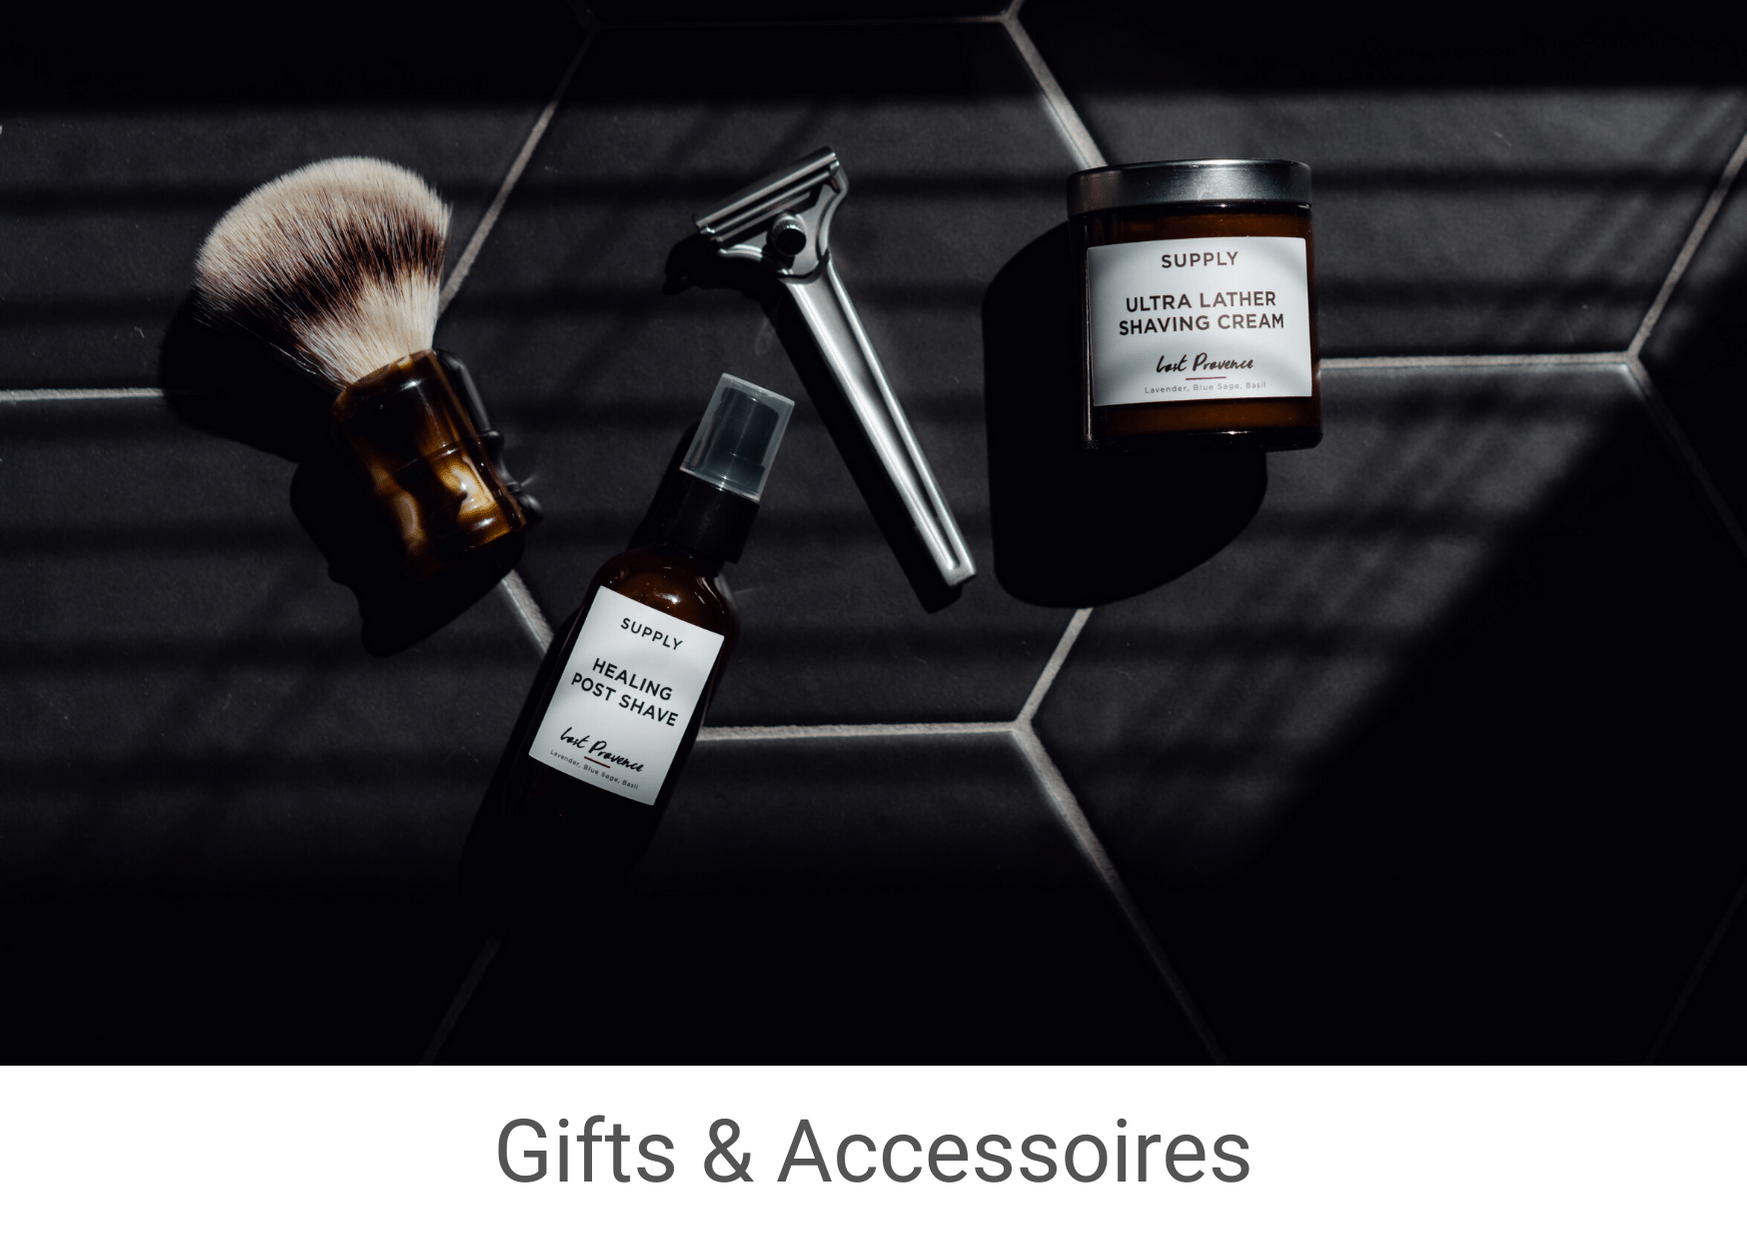 Gifts & accessoires